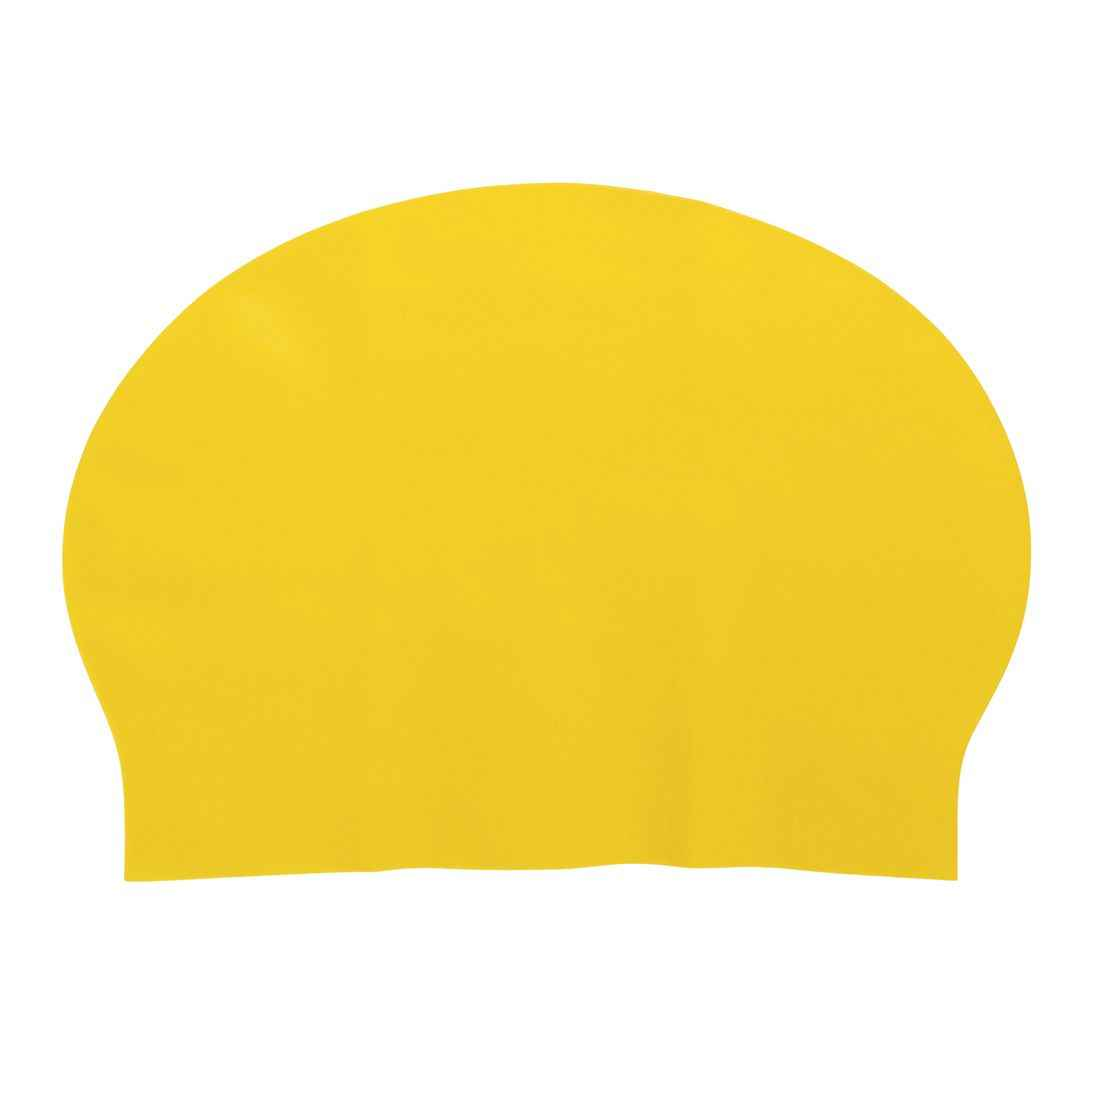 1c387744a20 Detail Feedback Questions about New Sale Adult Soft Silicone ...